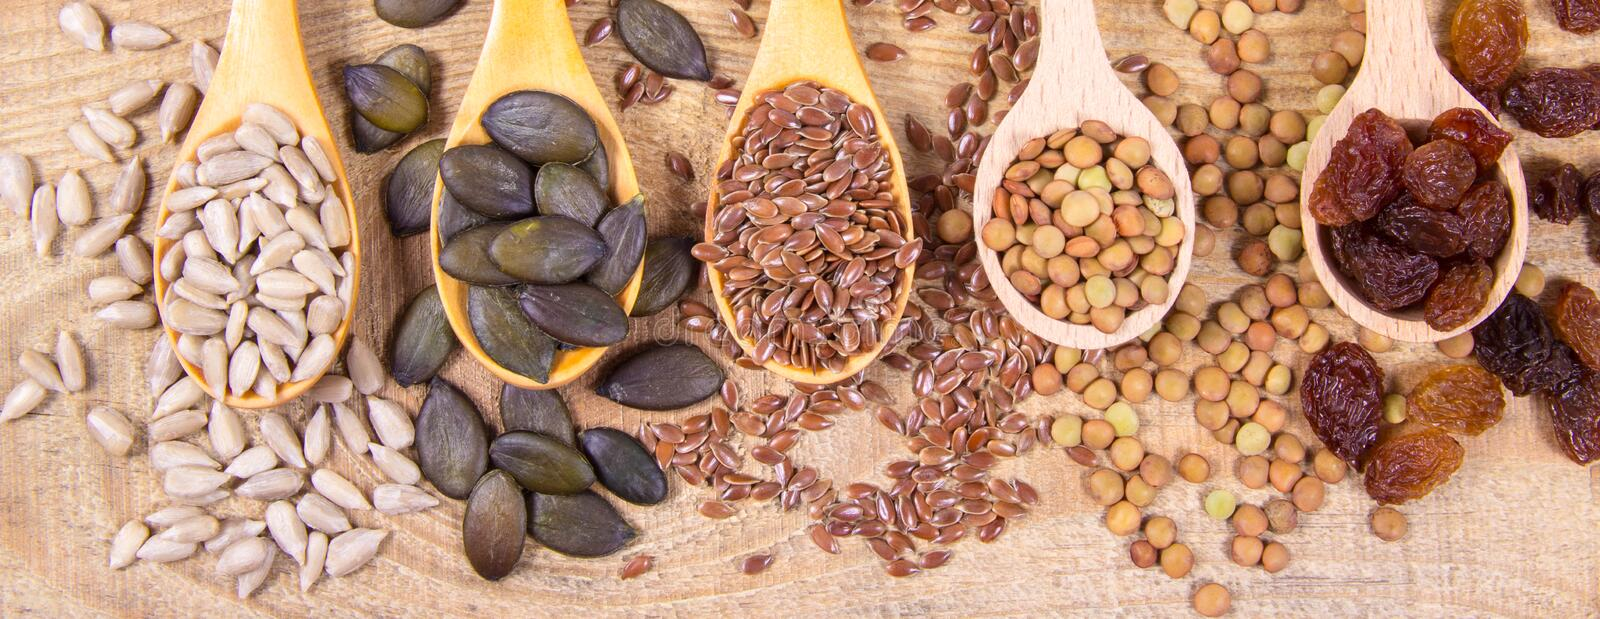 Flaxseed, pumpkin, raisins, lentils and sunflower seeds in wooden spoons. Seeds - a concept of healthy food additives stock photo